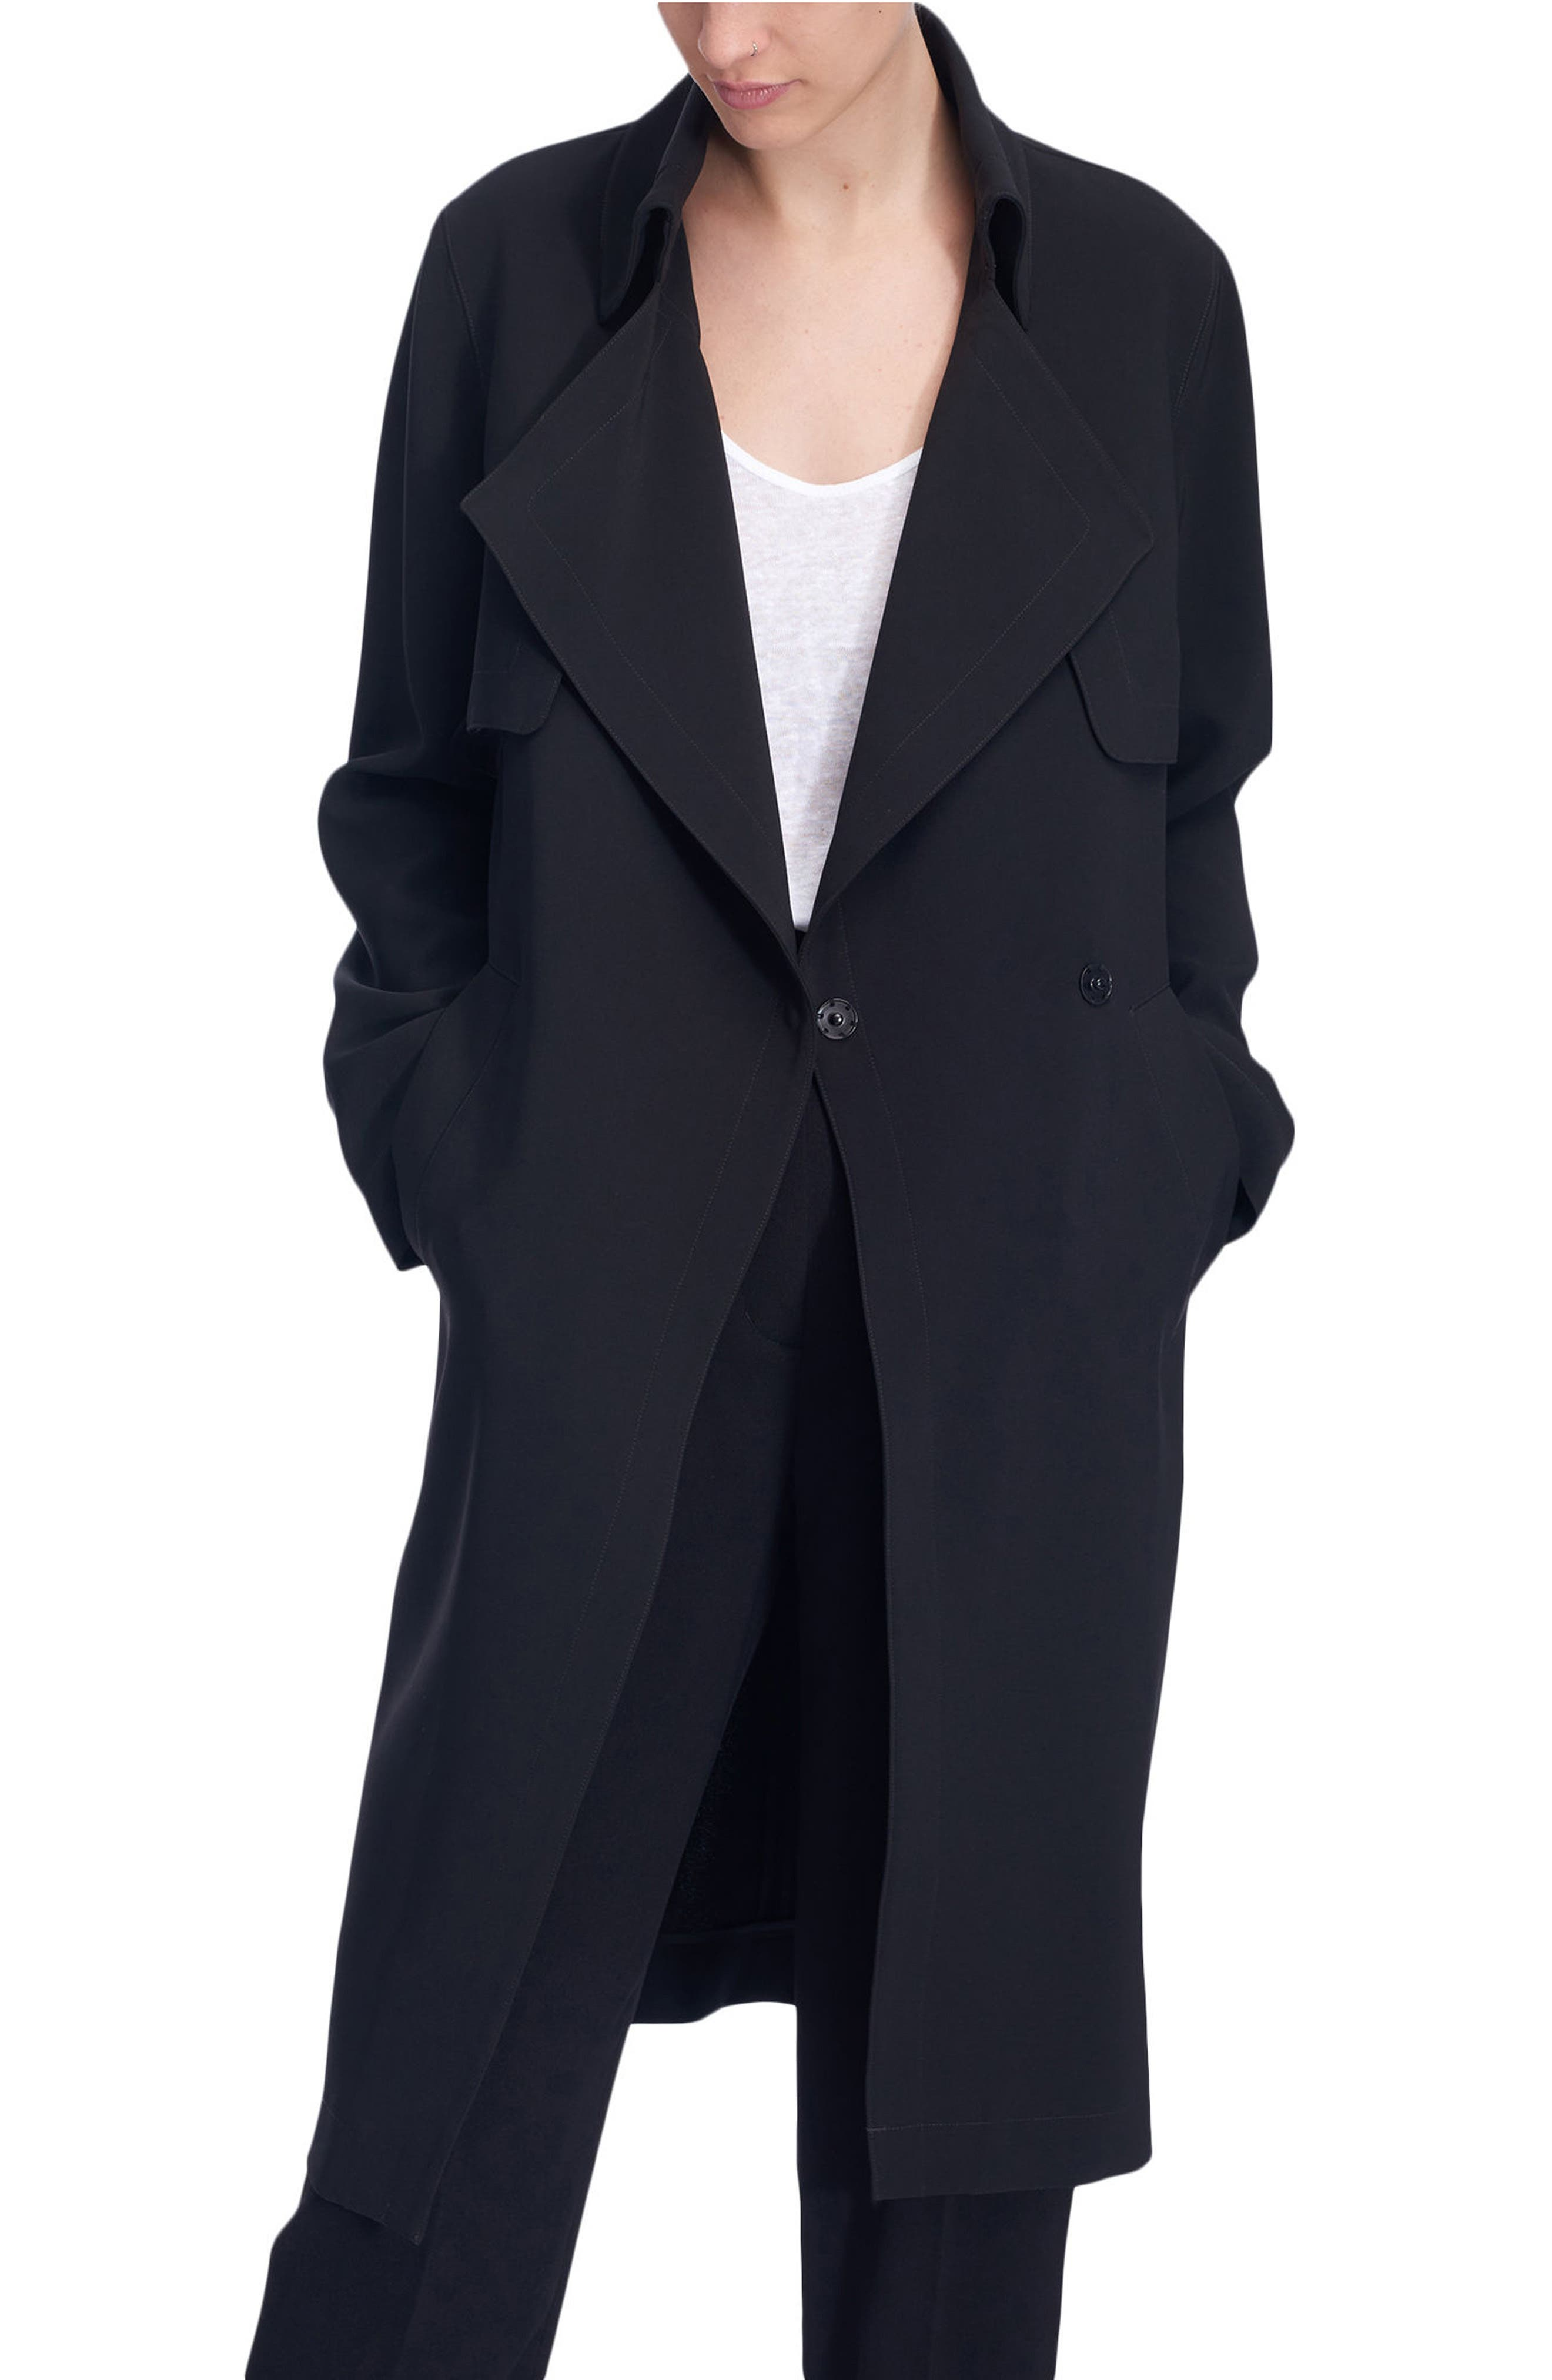 Long Duster Coat,                         Main,                         color, 001